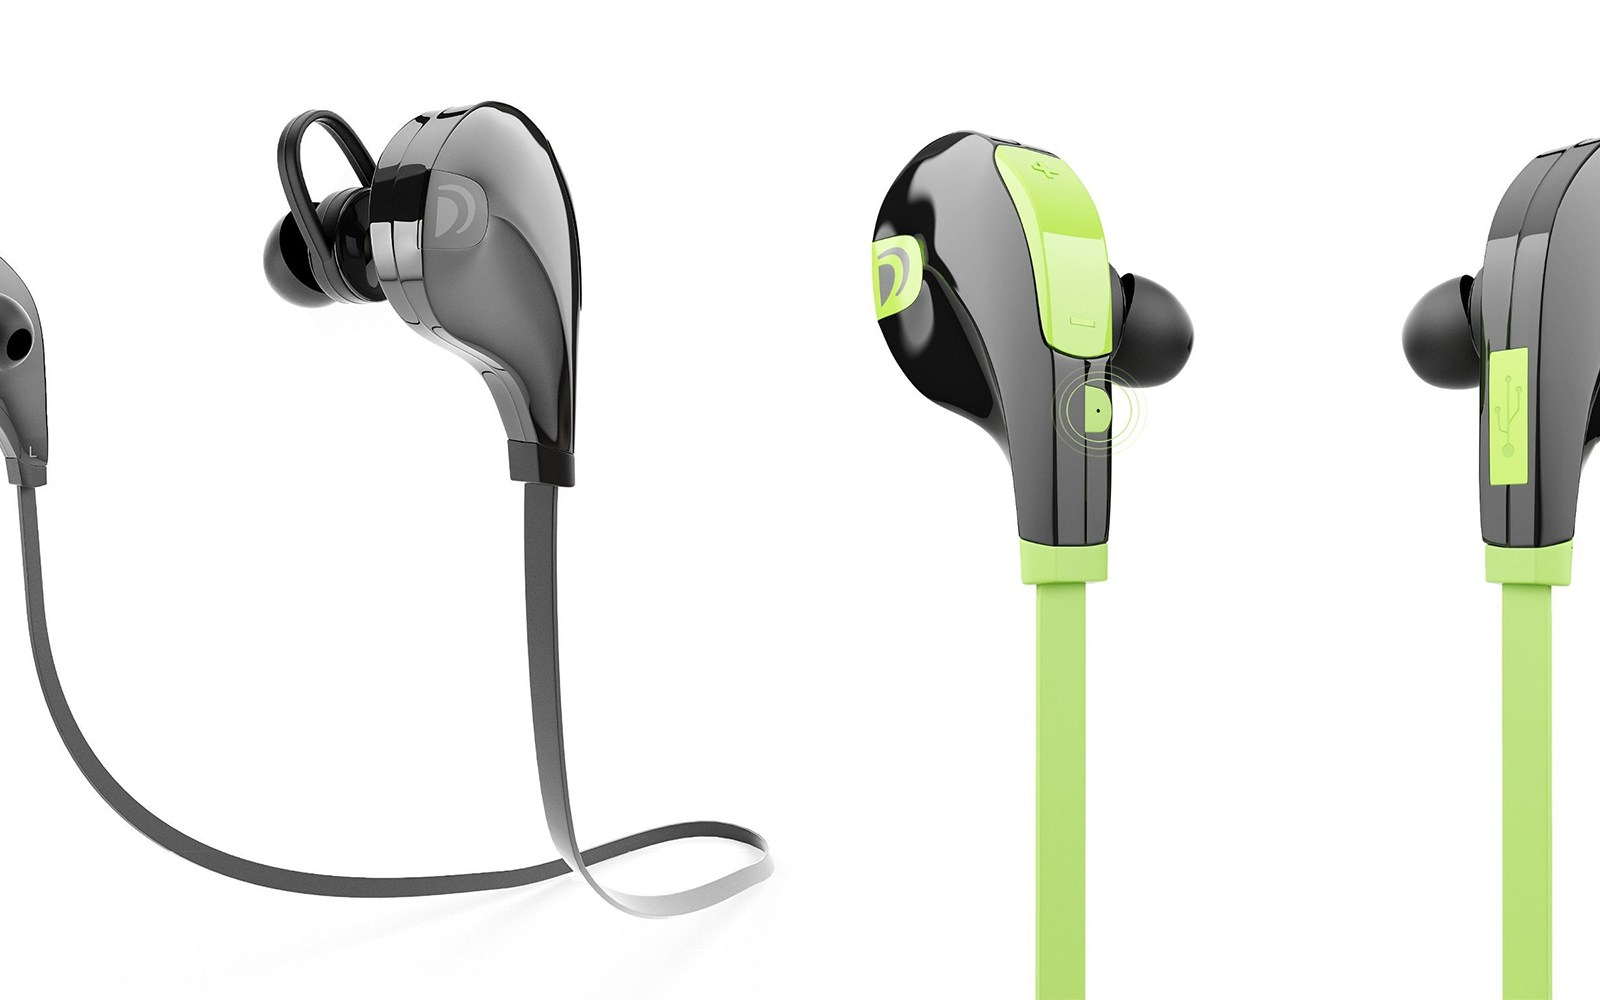 Sports/Fitness: Bluetooth 4.0 sport in-ear headphones $13 (Reg. $30), Natural Fitness Yoga Mat $20 (Reg. up to $30), more